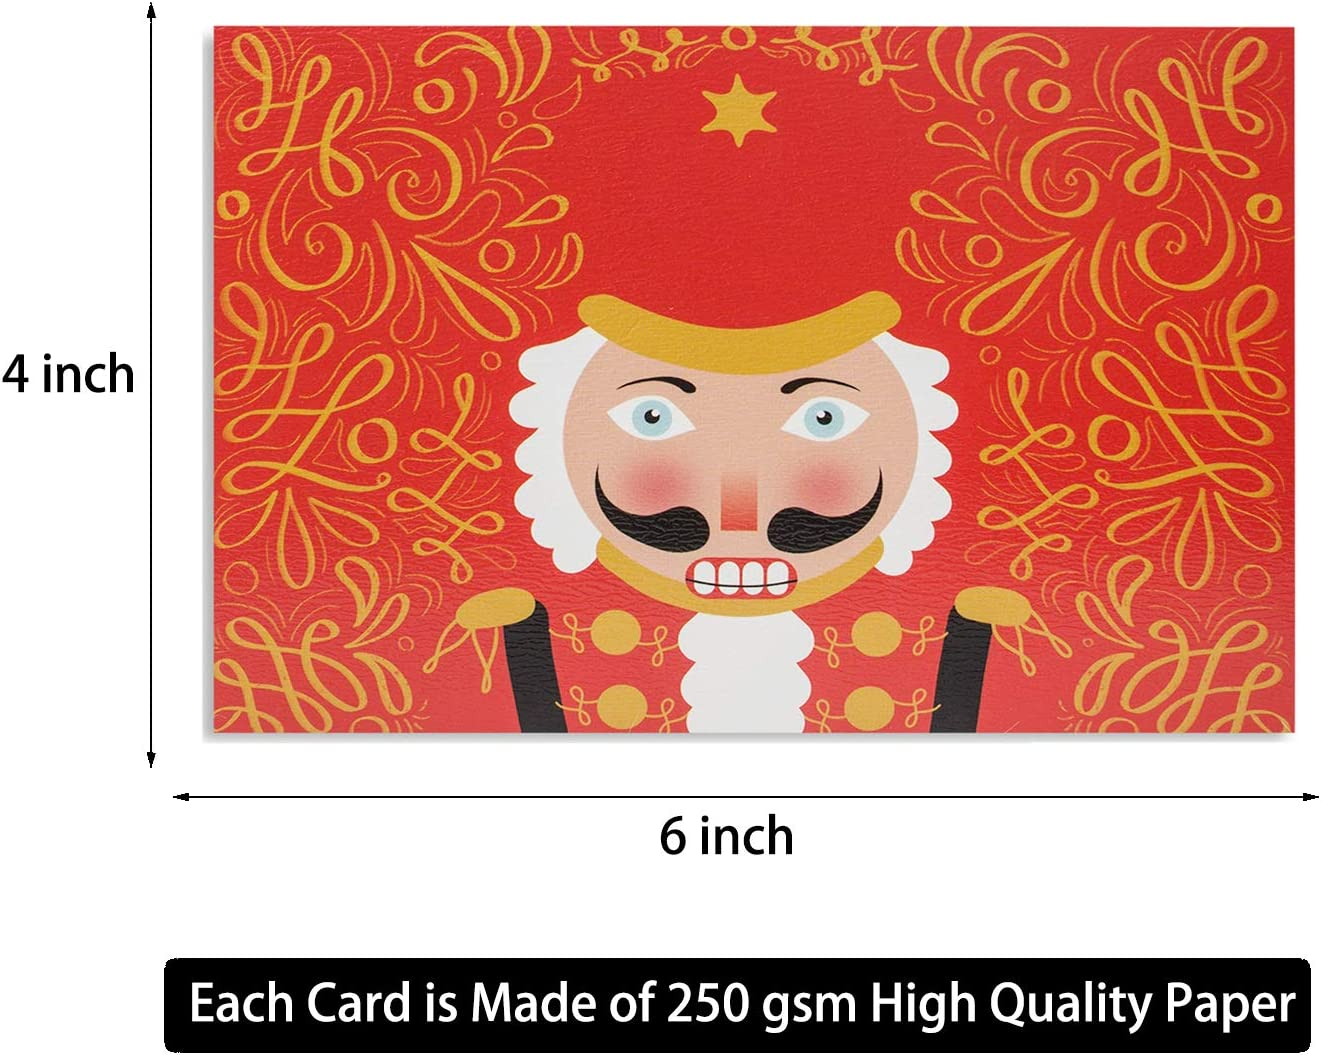 Assorted Holiday Greeting Cards in 24 Unique Watercolor Designs 24 Watercolor Christmas Cards Christmas Greeting Card Bulk Assorted Christmas Cards Include 24 Kraft Envelopes 4 x 6 Inches